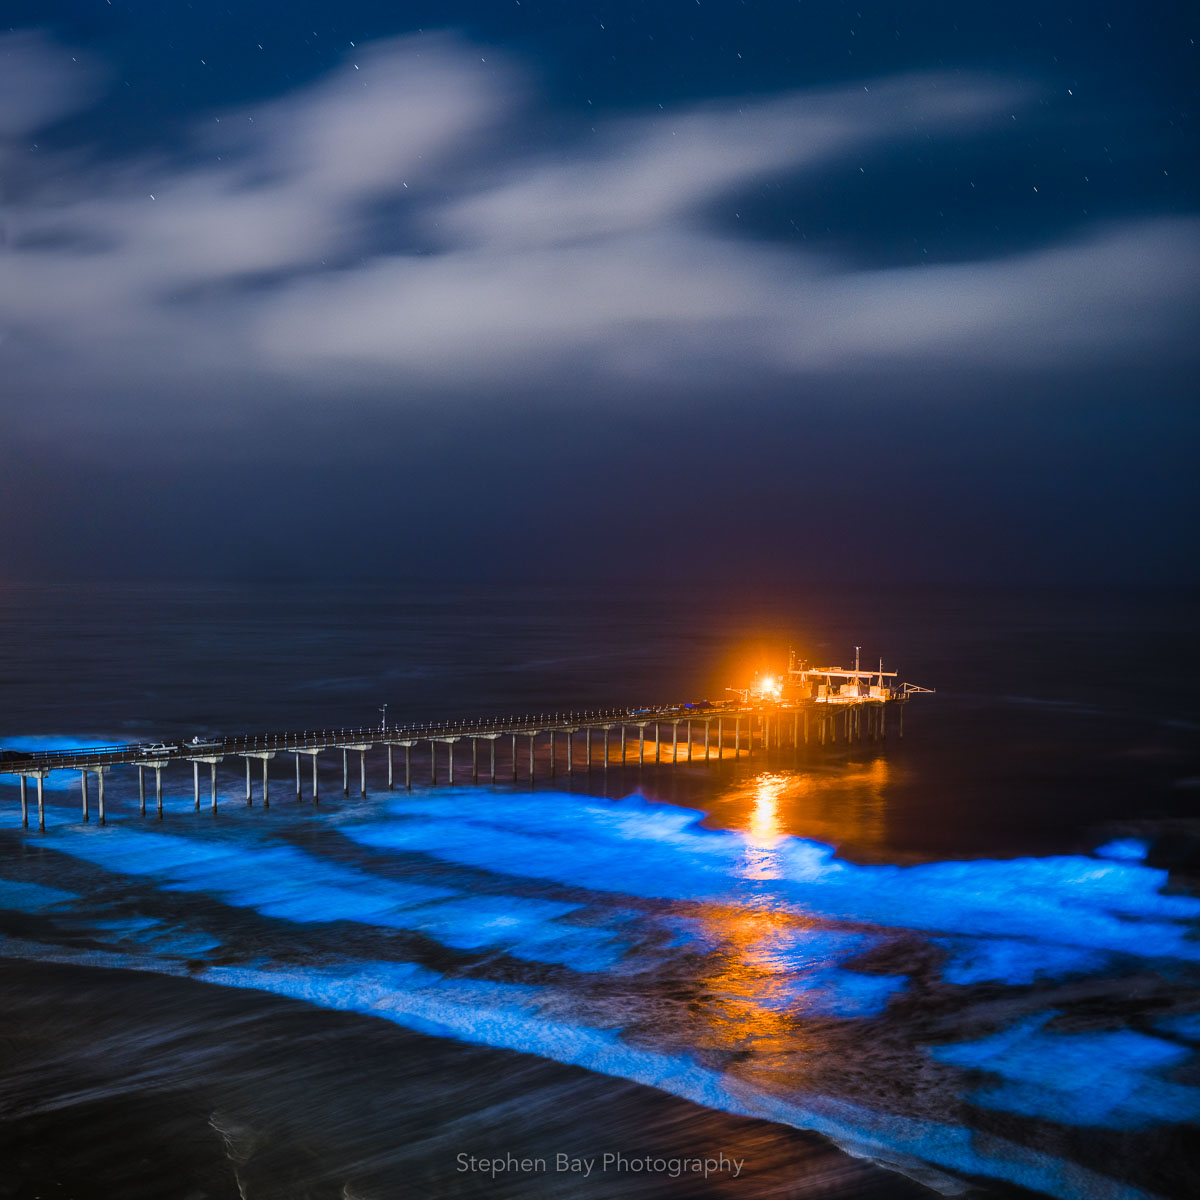 A photo of scripps pier with glowing blue waves from bioluminescent algae washing on to shore. The photo is at night with white clouds and stars in the sky.